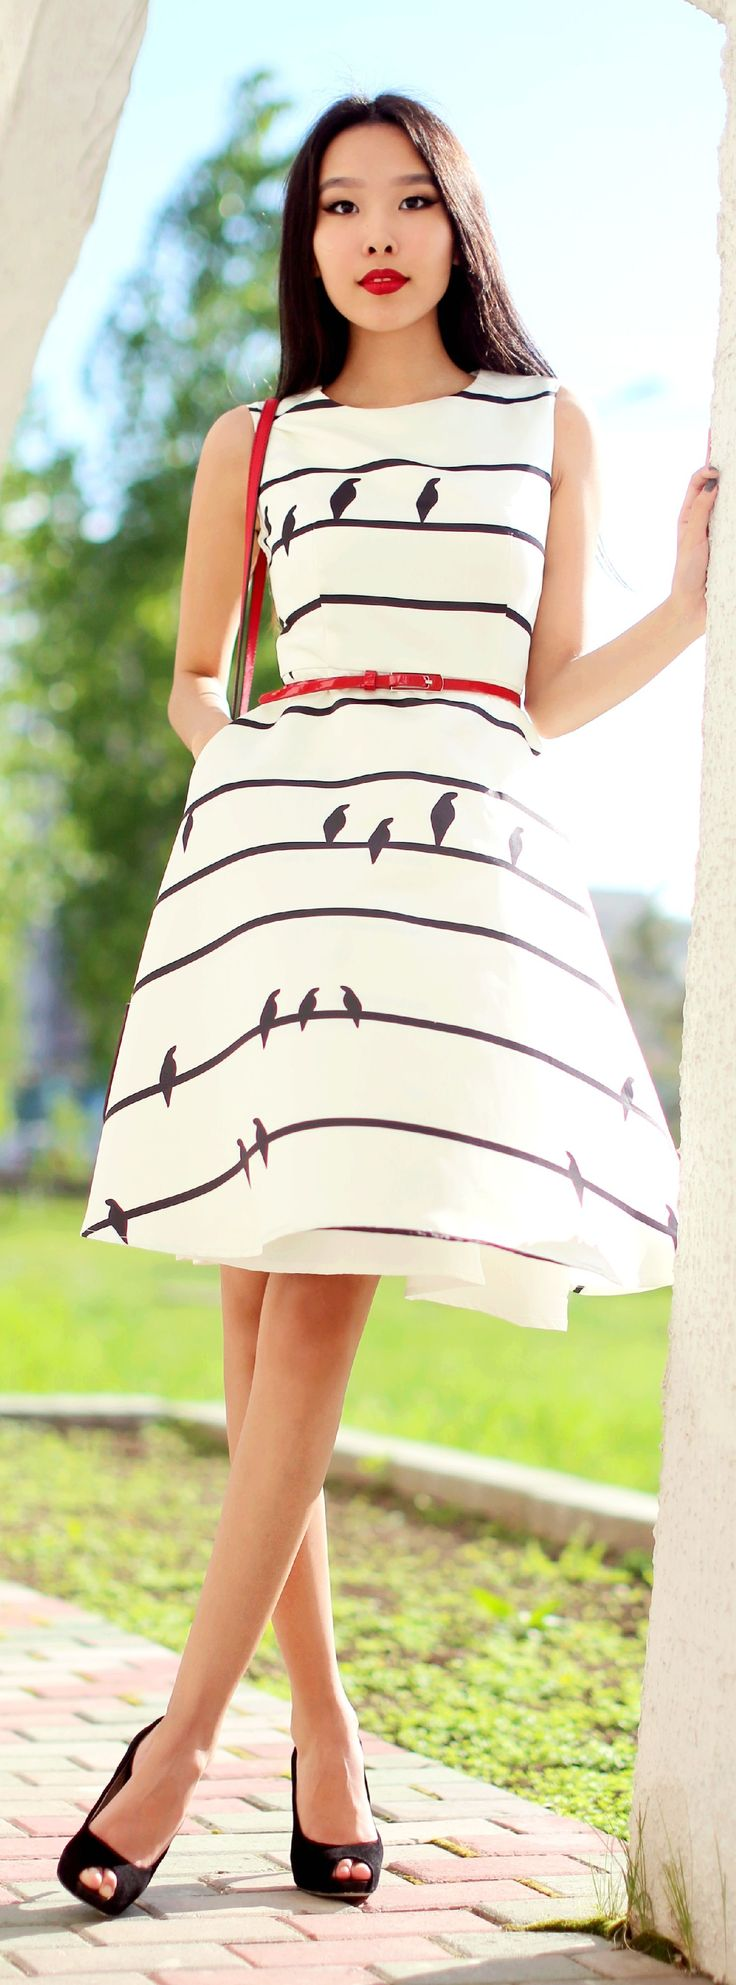 Birds On Strings Dress Chic Style